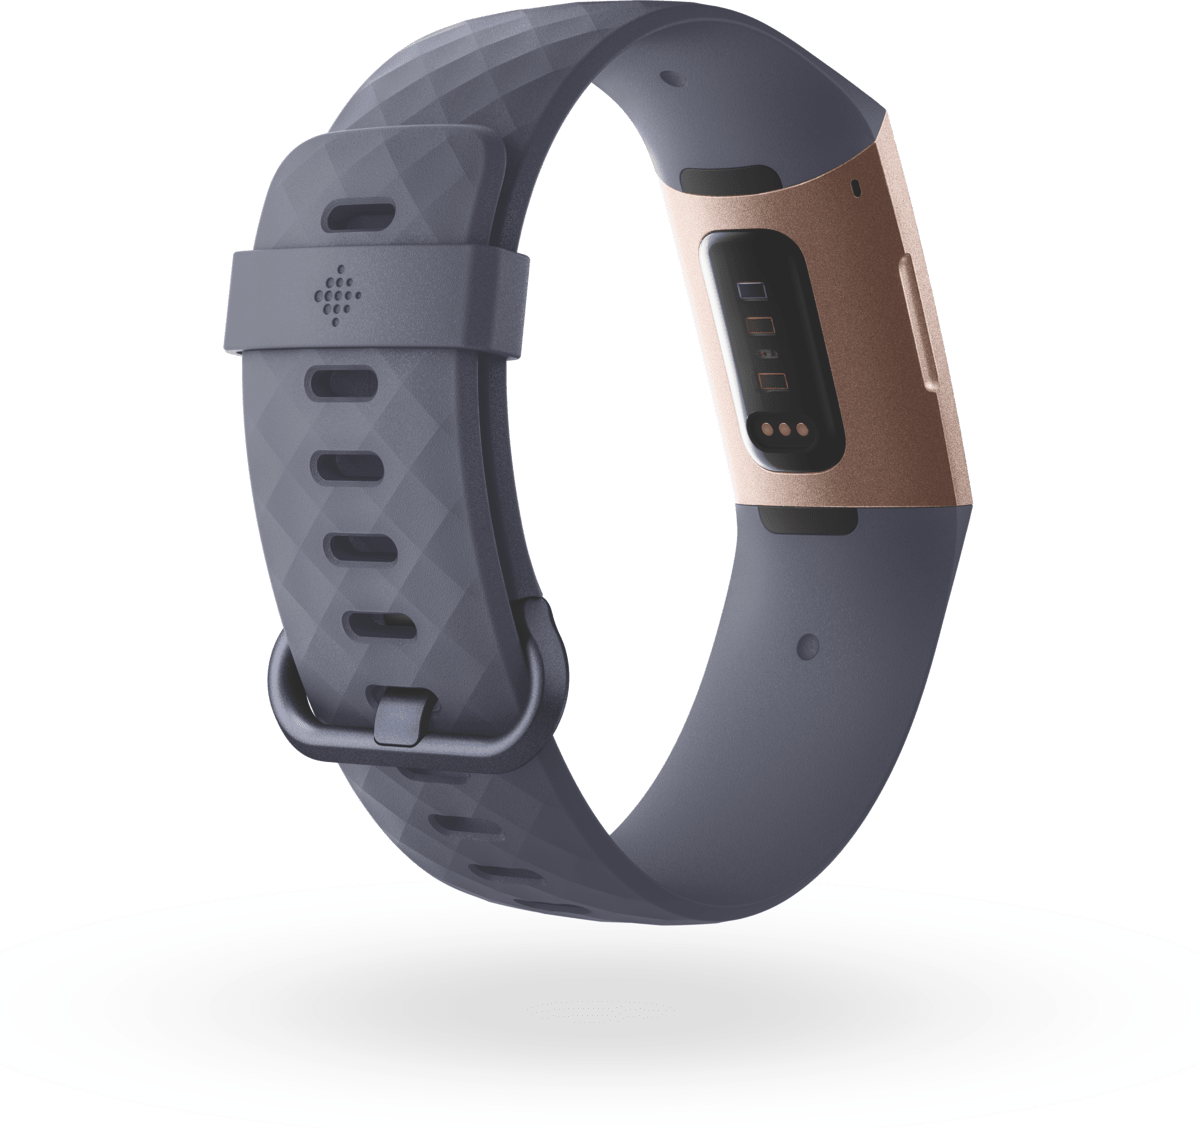 Rose Gold & Blau Grau Fitbit Charge 3.2